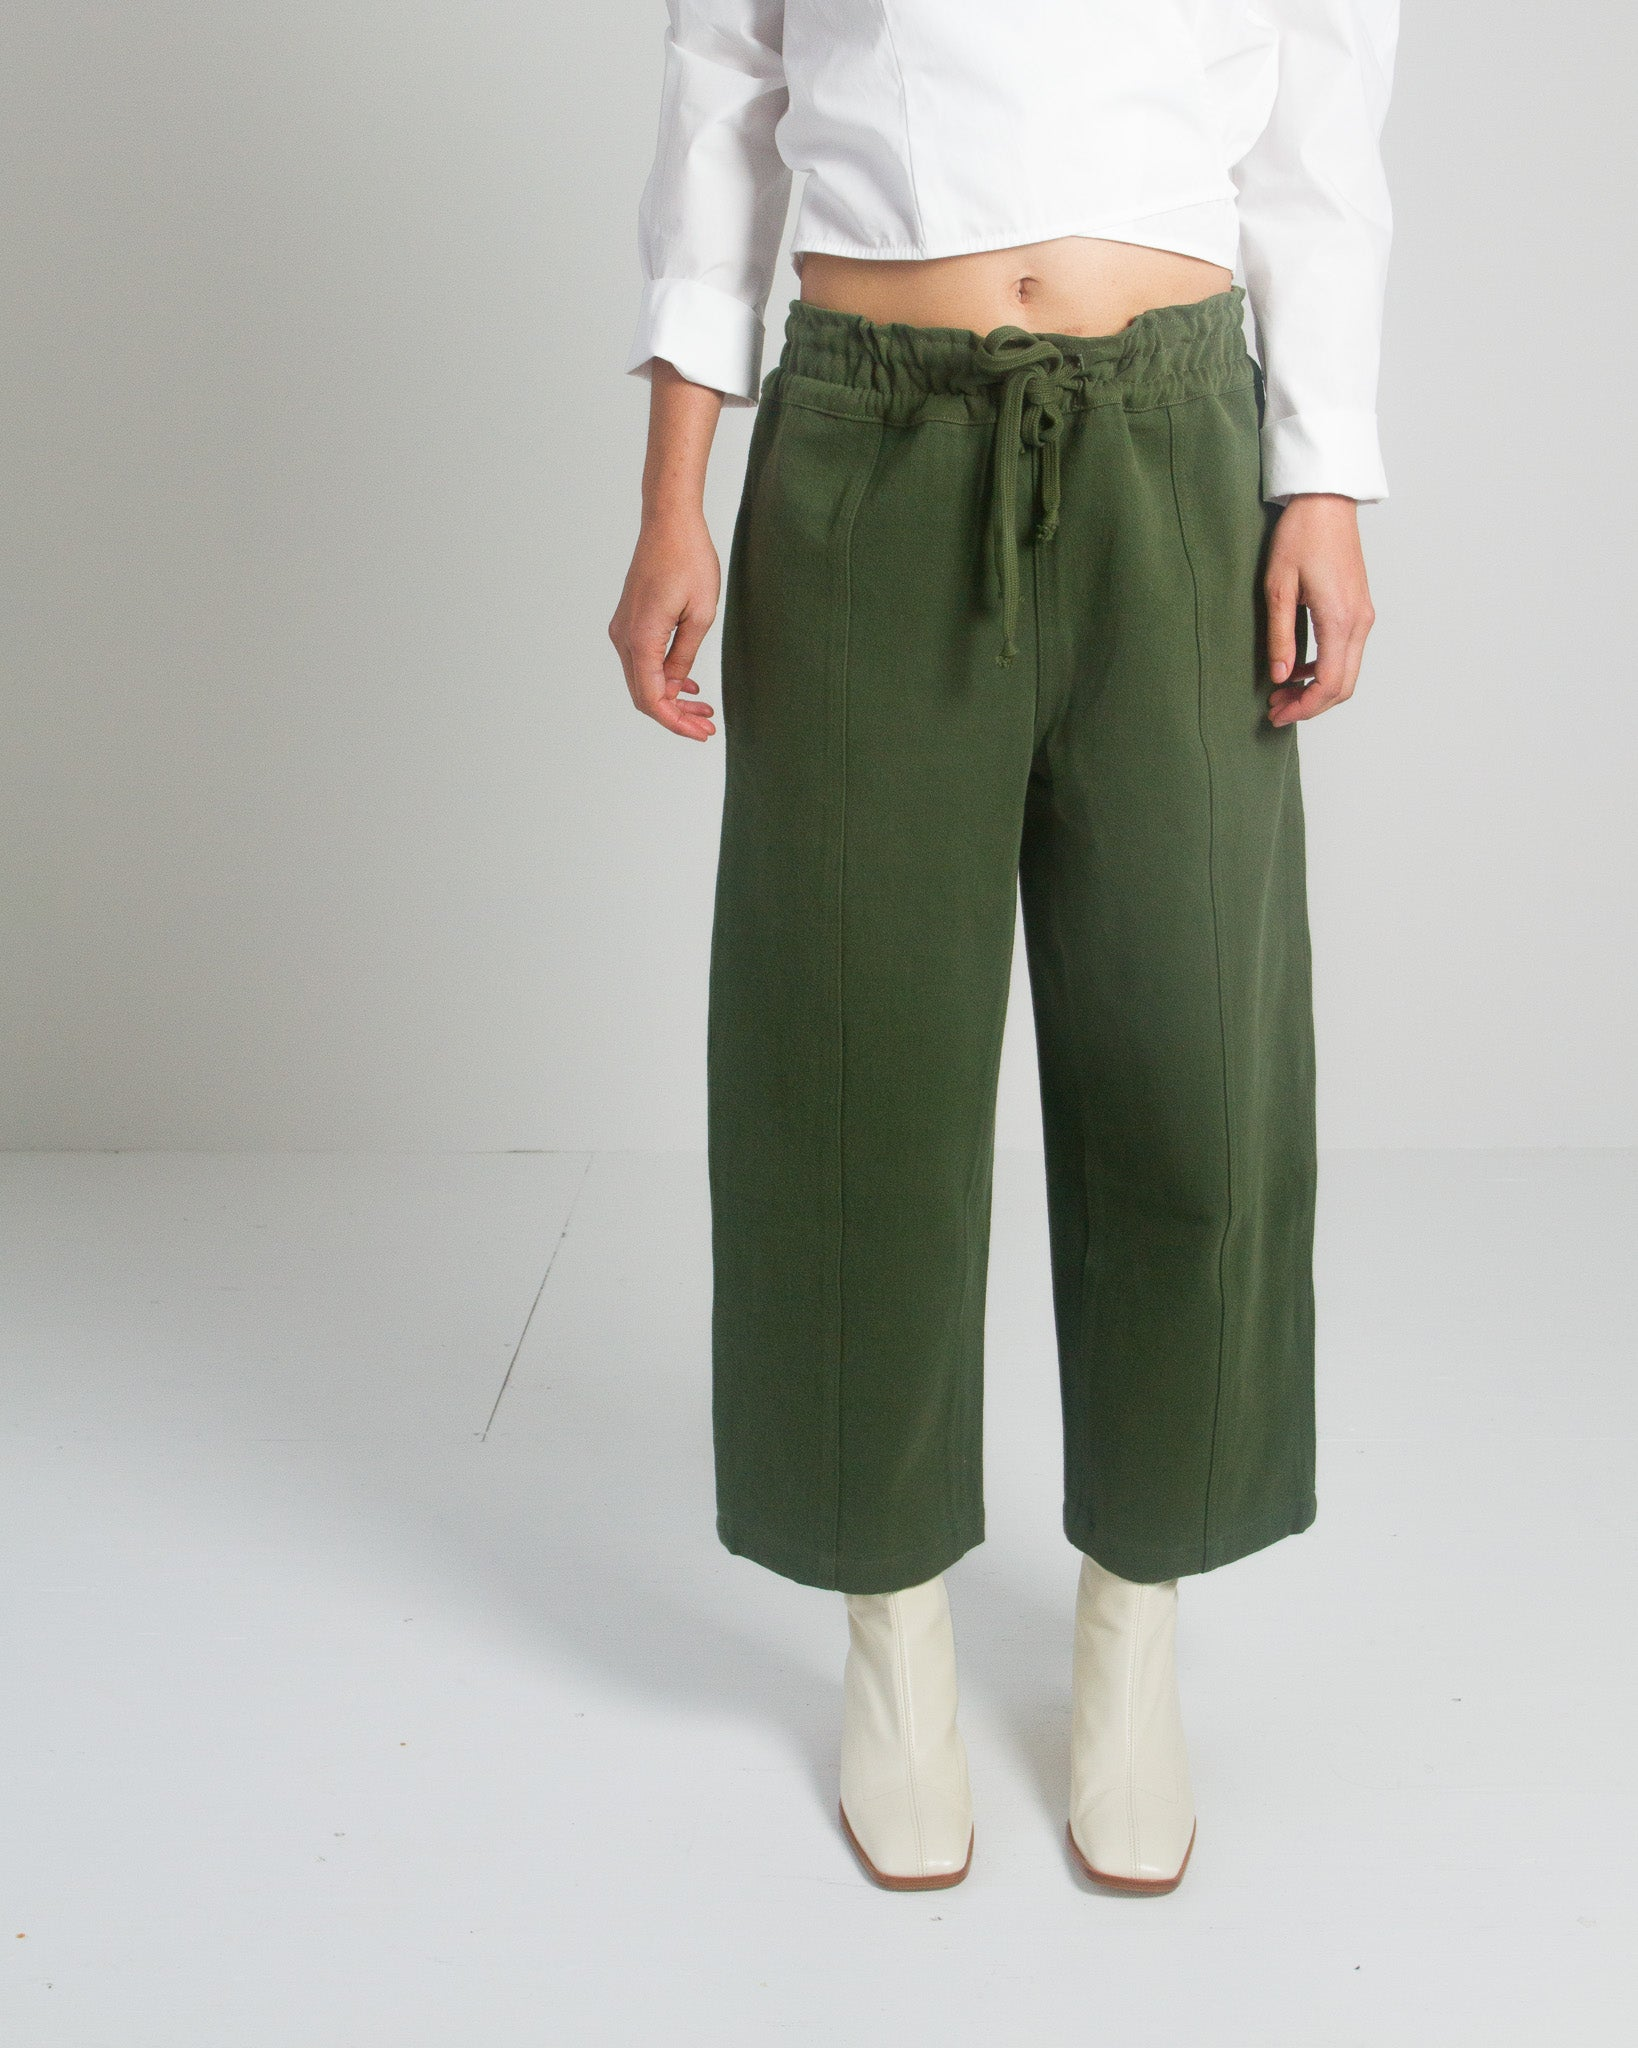 Kordal Alva Pants in Olive